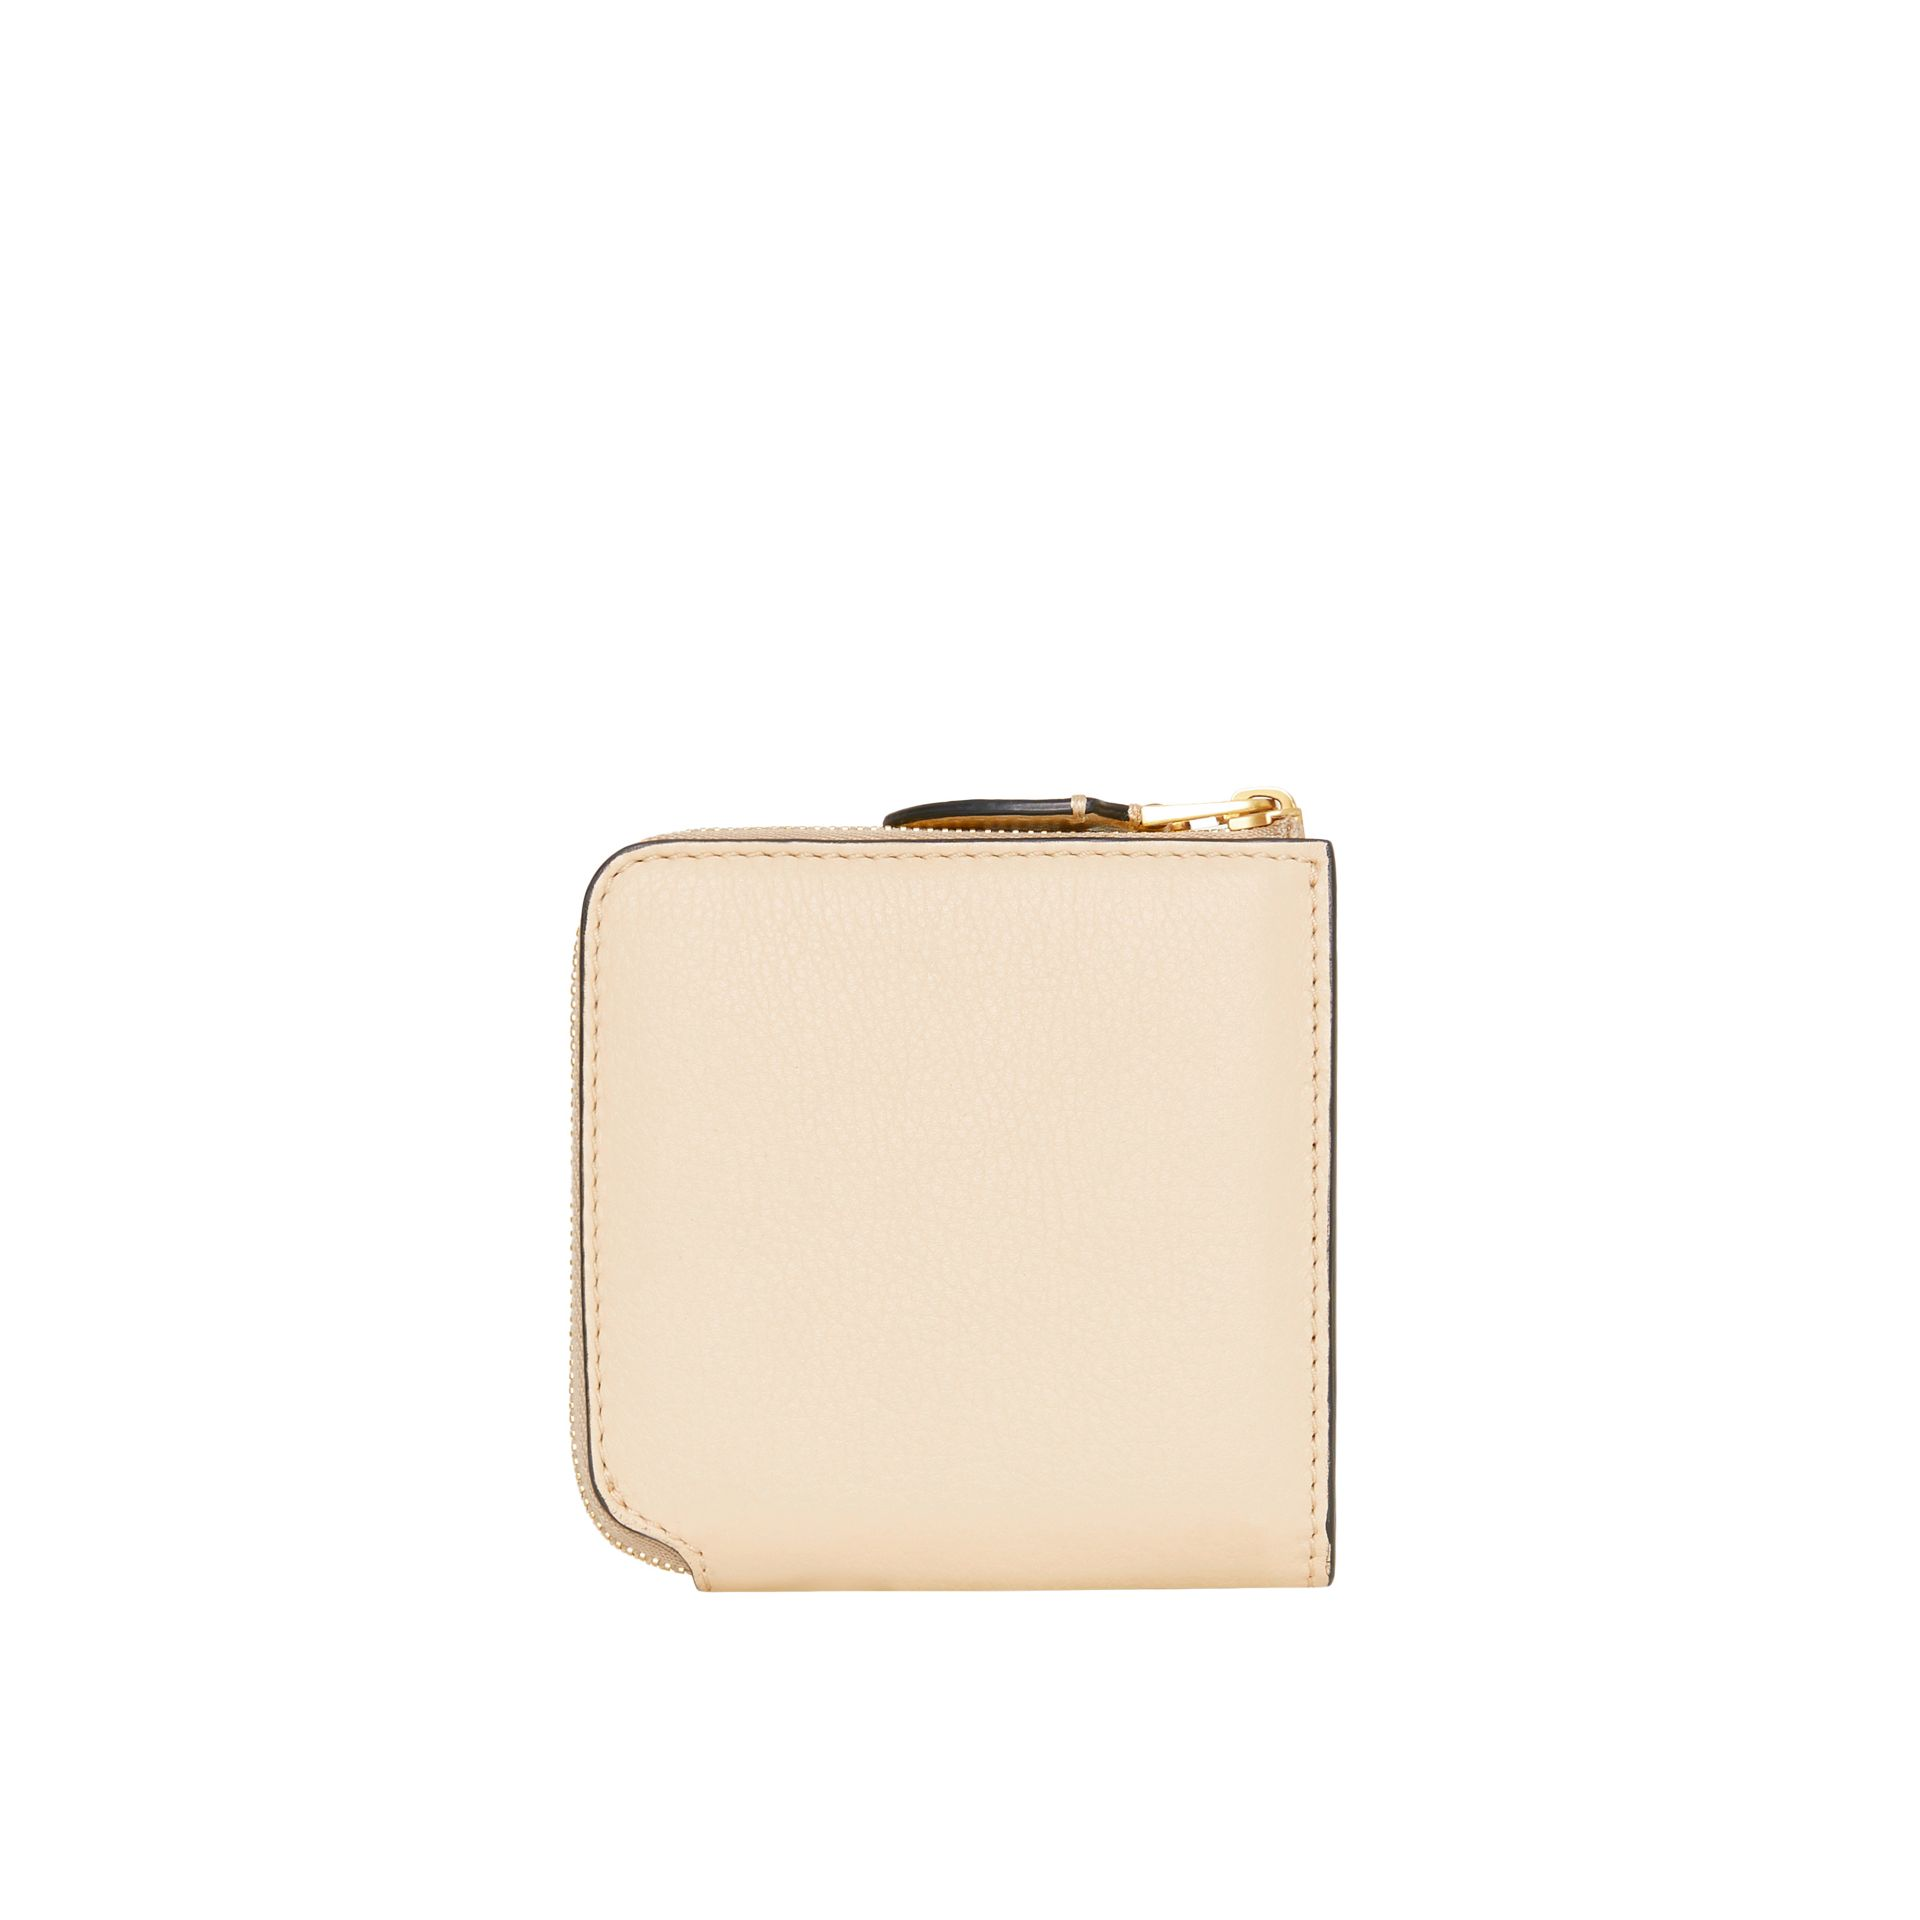 Grainy Leather Square Ziparound Wallet in Limestone - Women | Burberry - gallery image 5